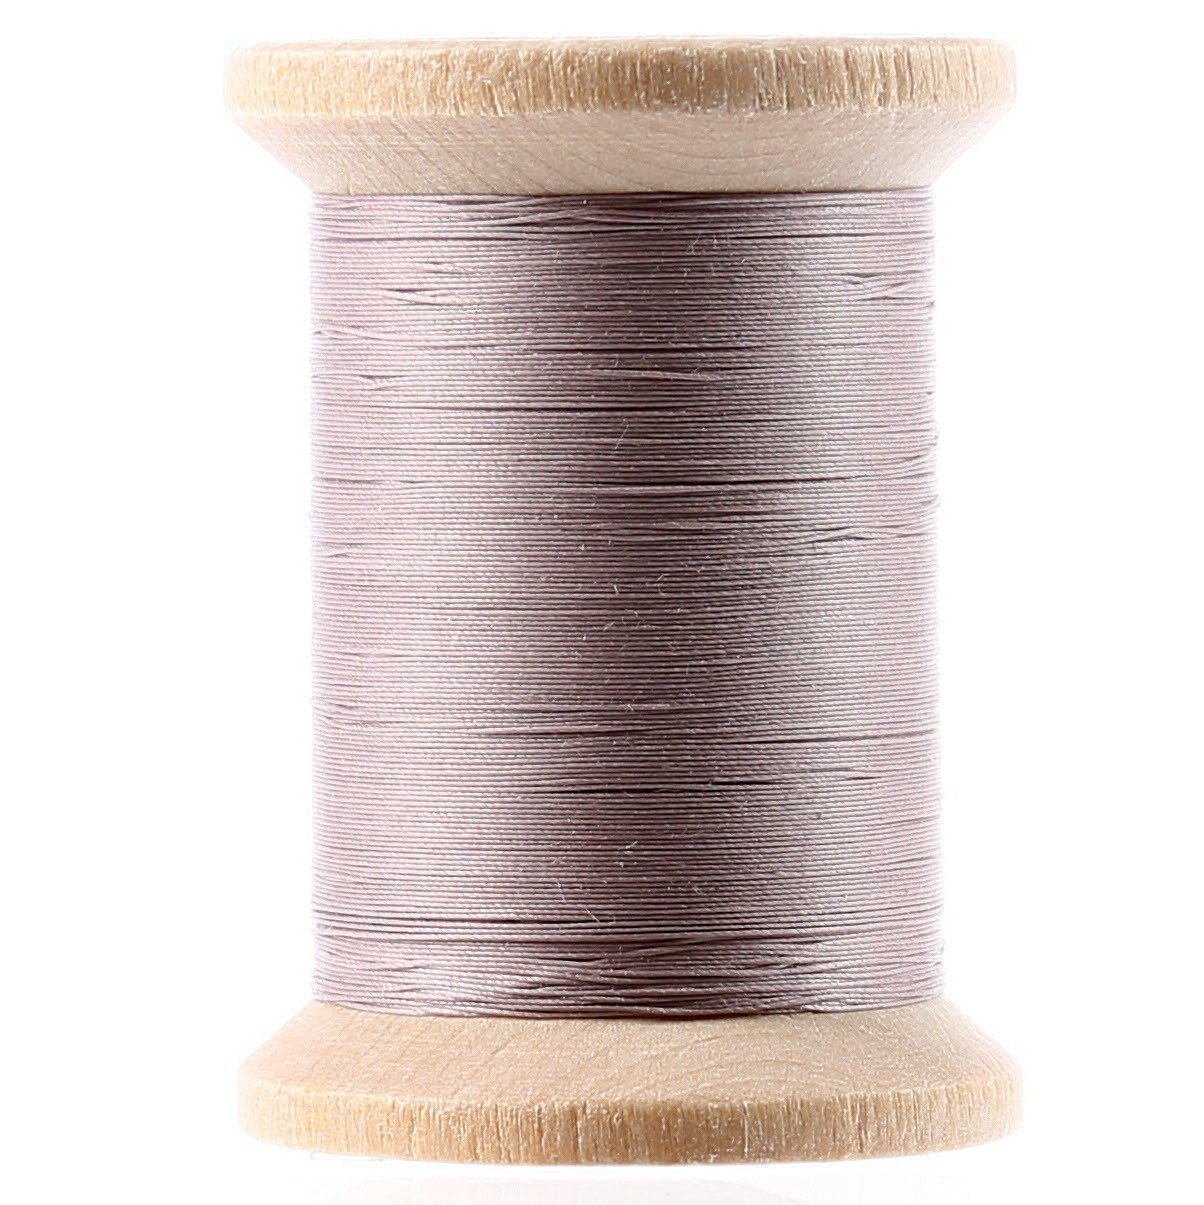 Cotton Hand Quilting Thread 3-ply T-40 400yds Grey